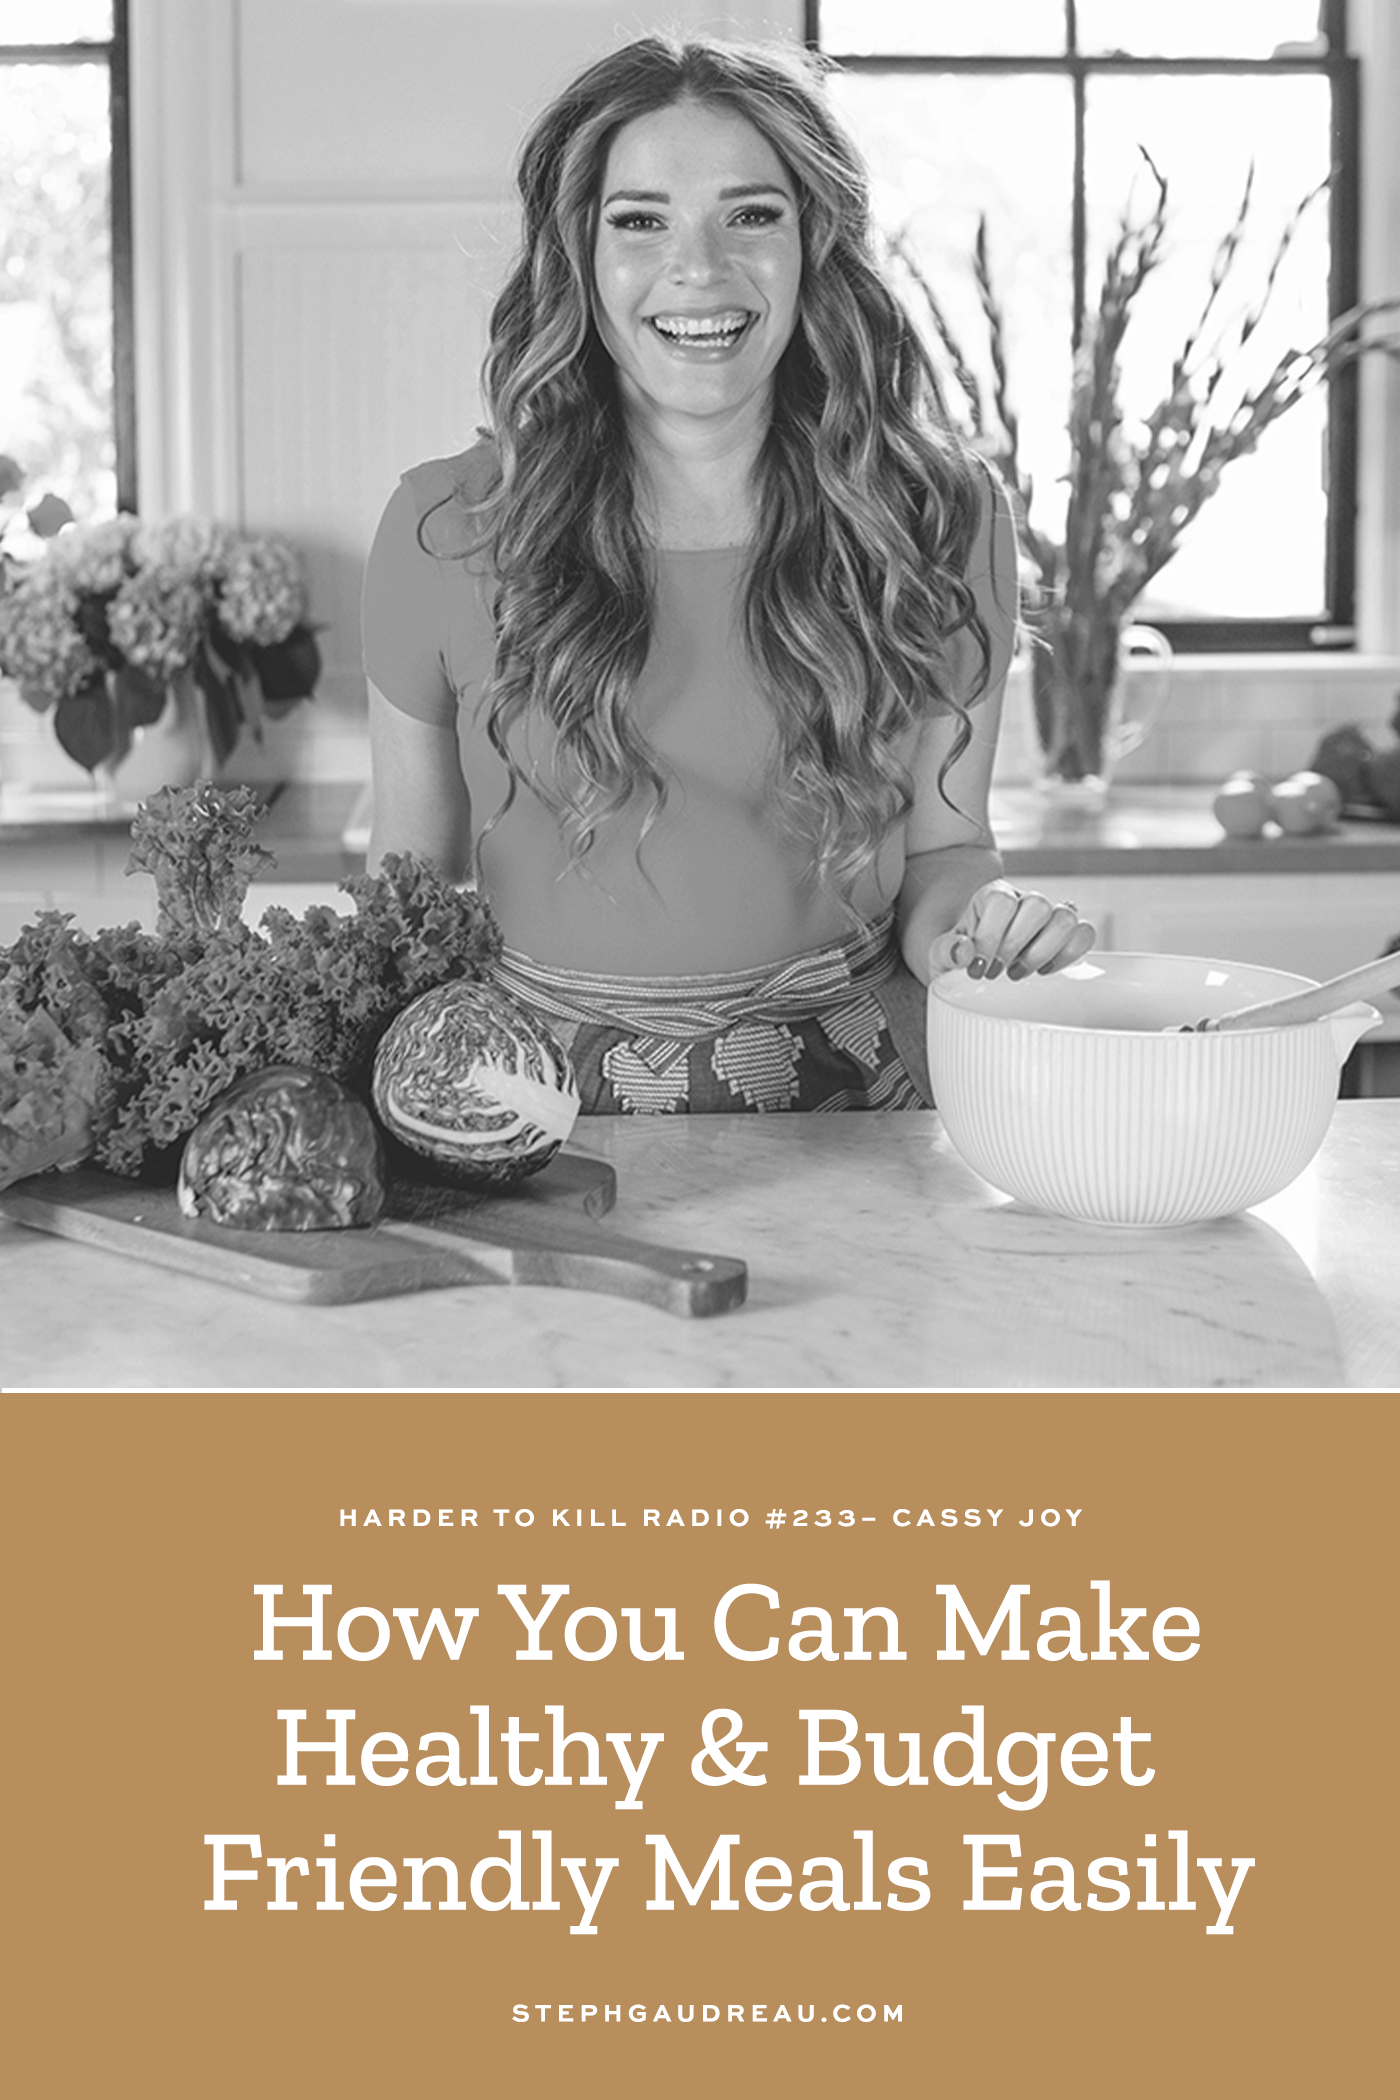 Harder To Kill Radio 233 How You Can Make Healthy & Budget Friendly Meals Easily w/ Cassy Joy